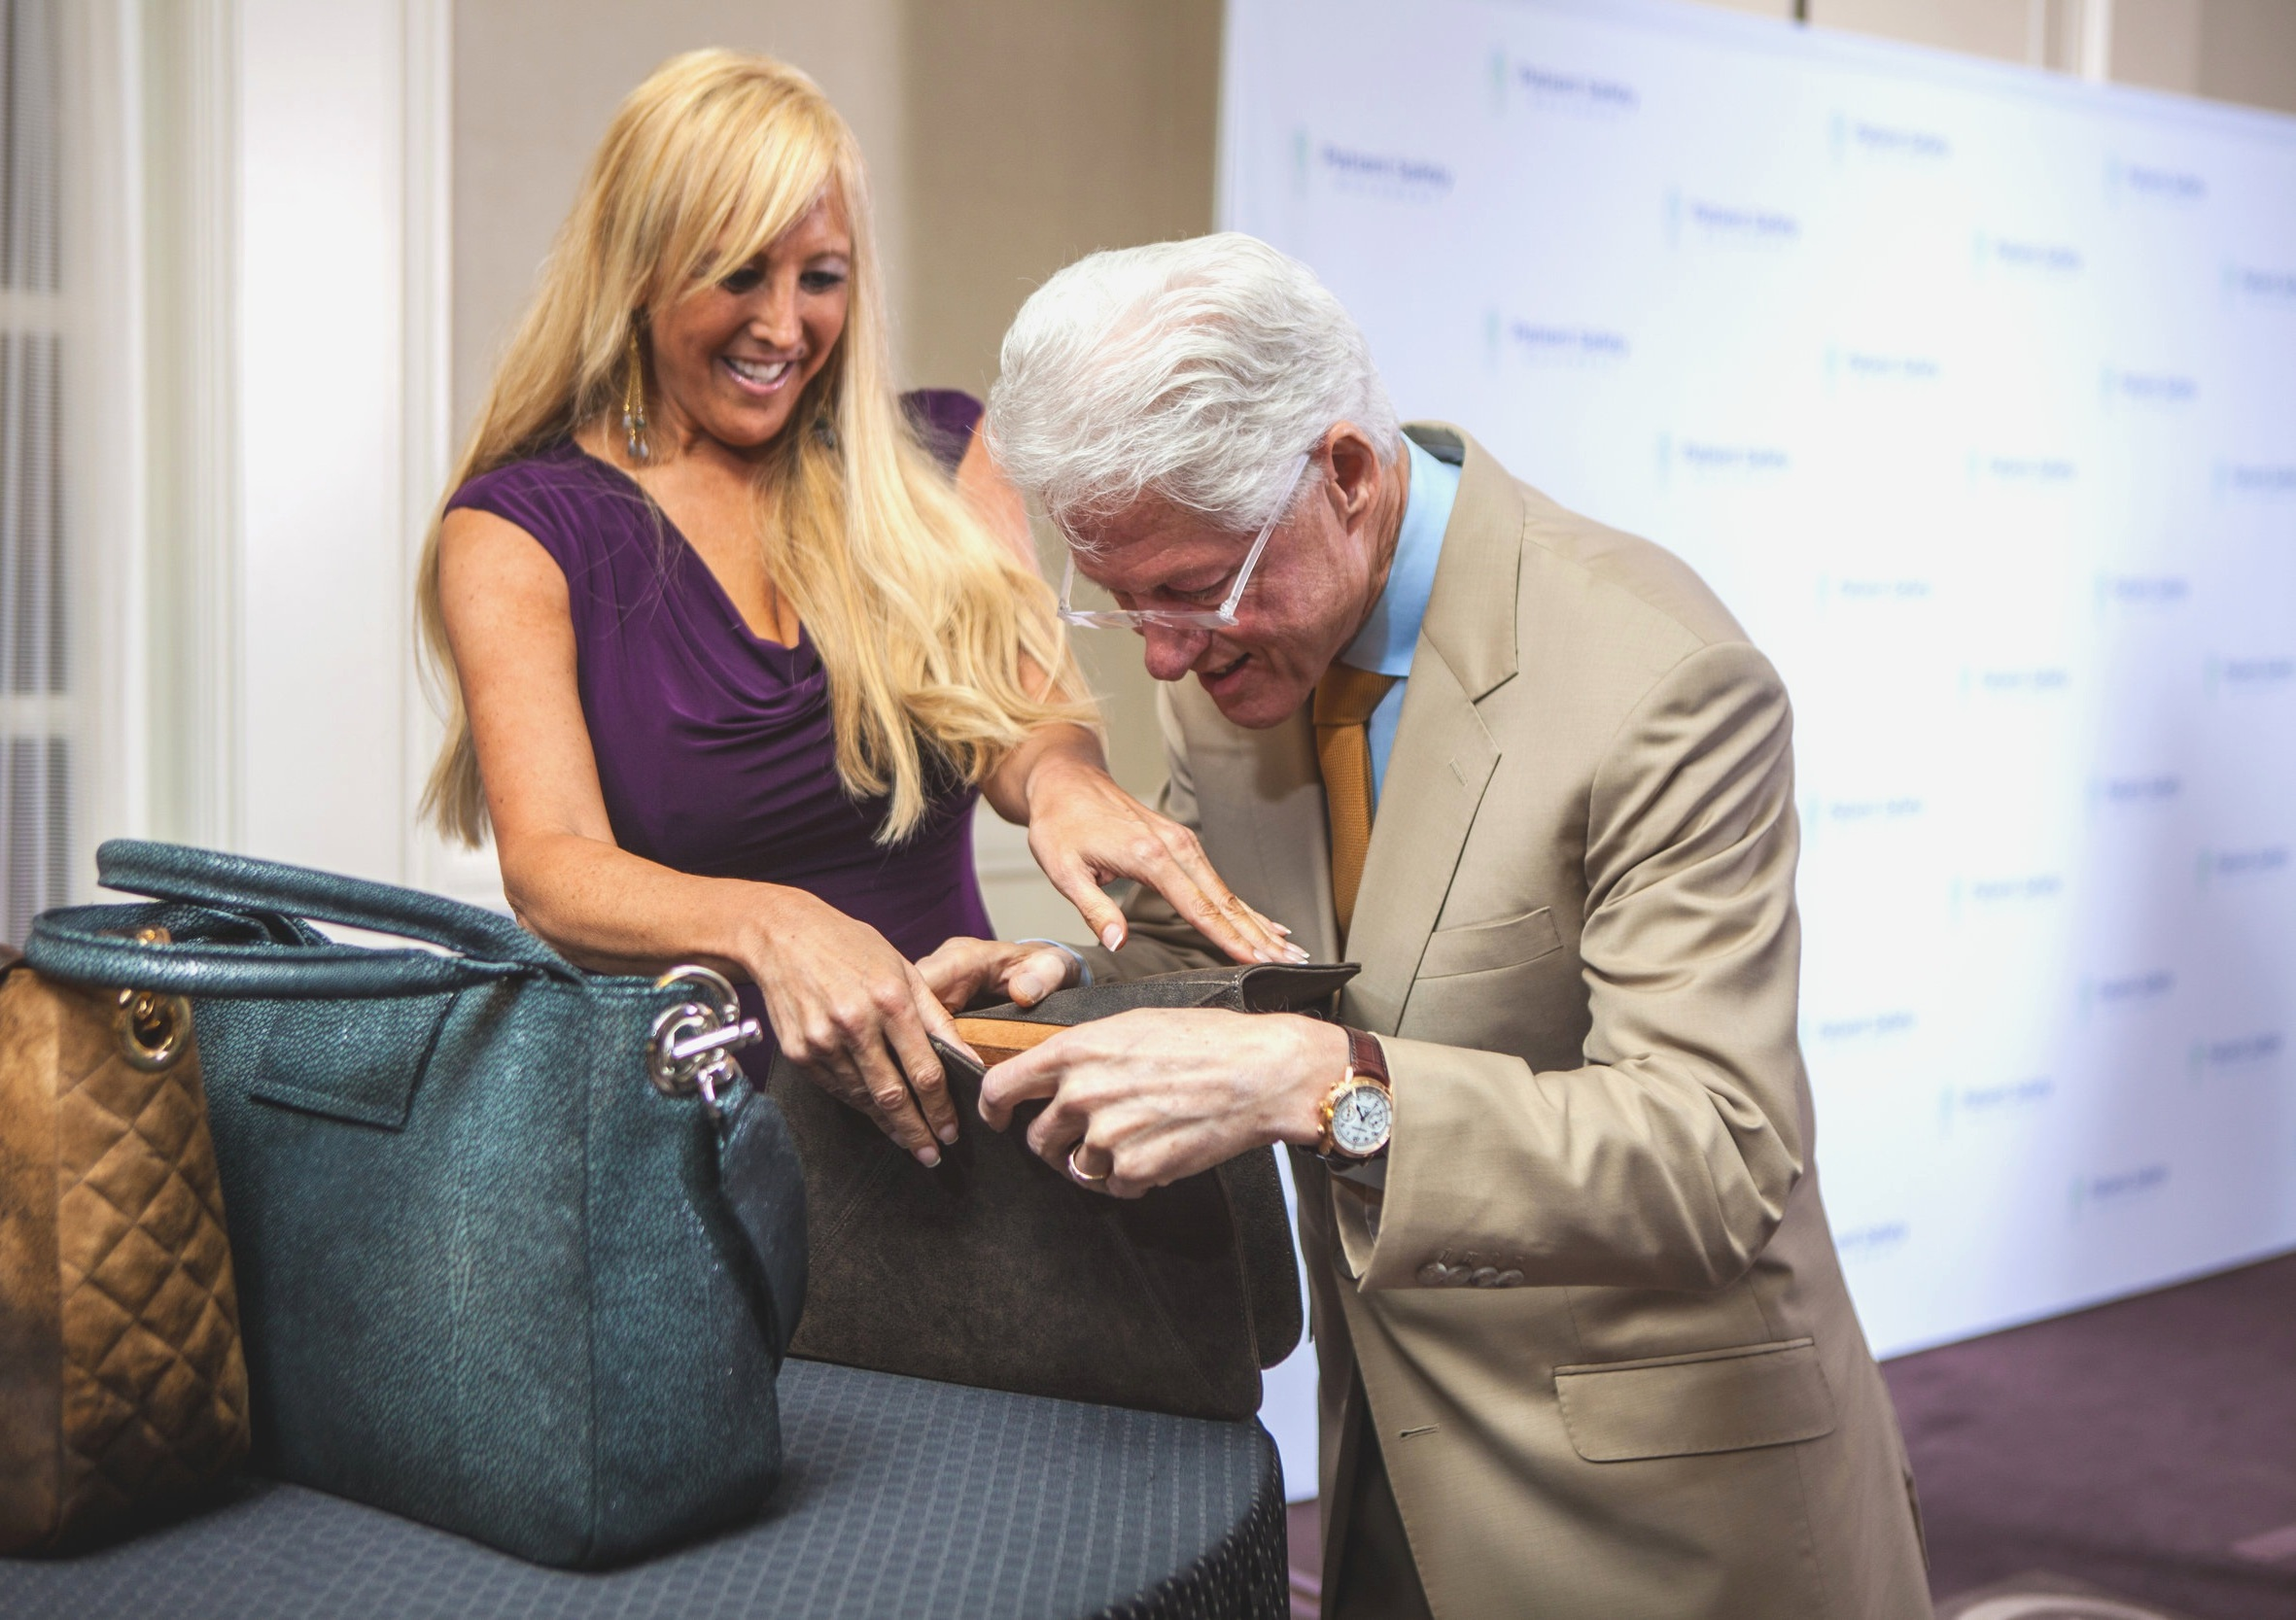 JAMAH Founder/Designer Nancy Gale with President Bill Clinton, presenting the JAMAH Clinton Collection.